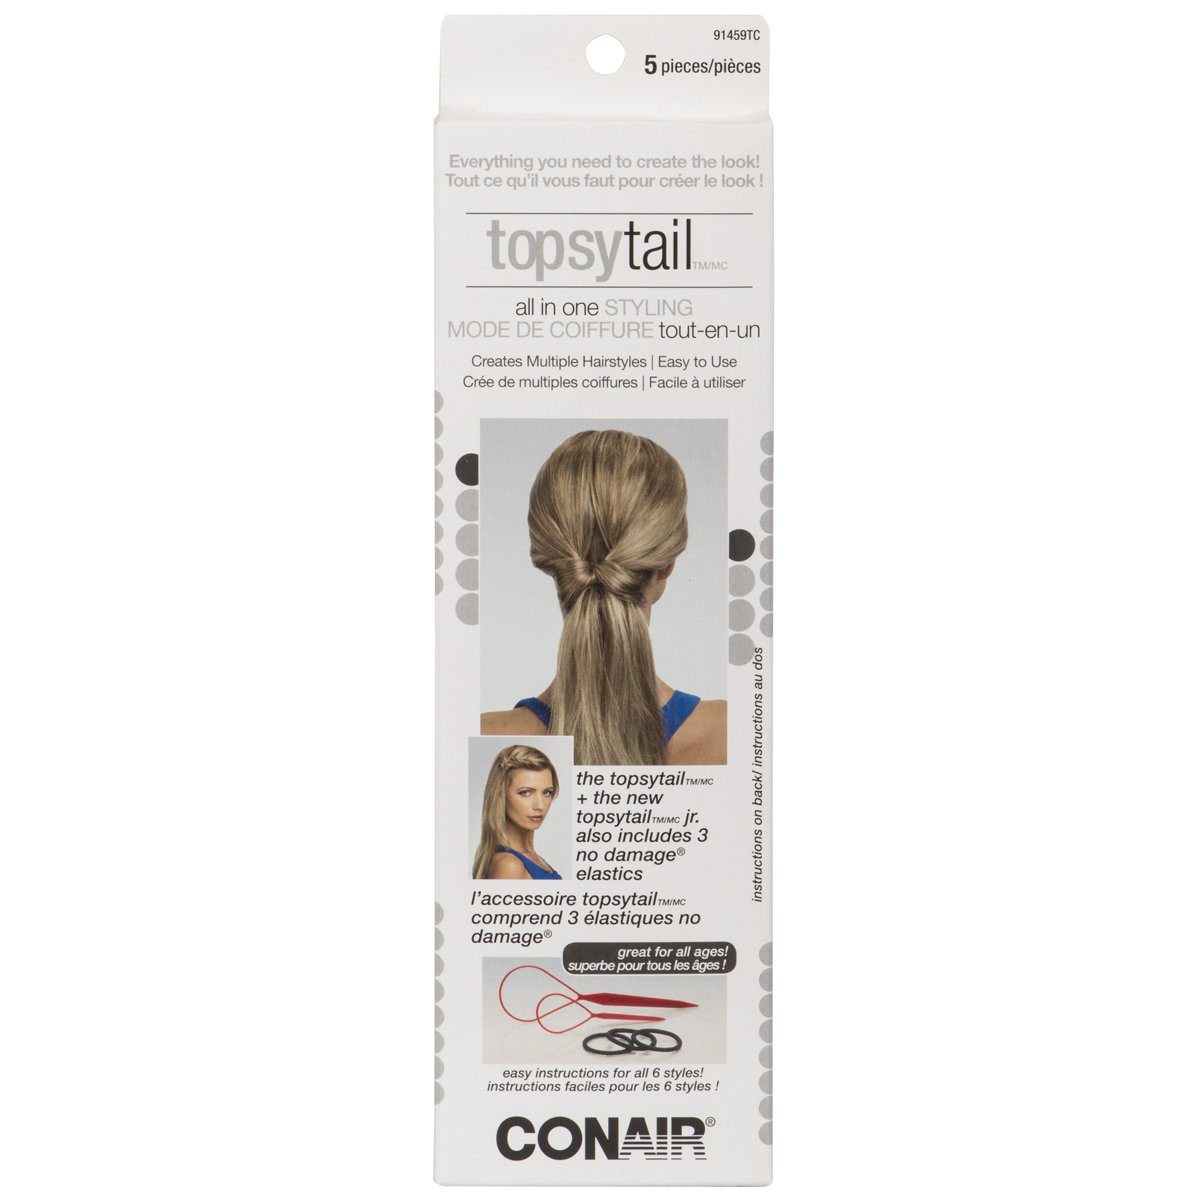 Conair 91459tc Topsy Tail, 1 Count Conair Consumer Products ULC